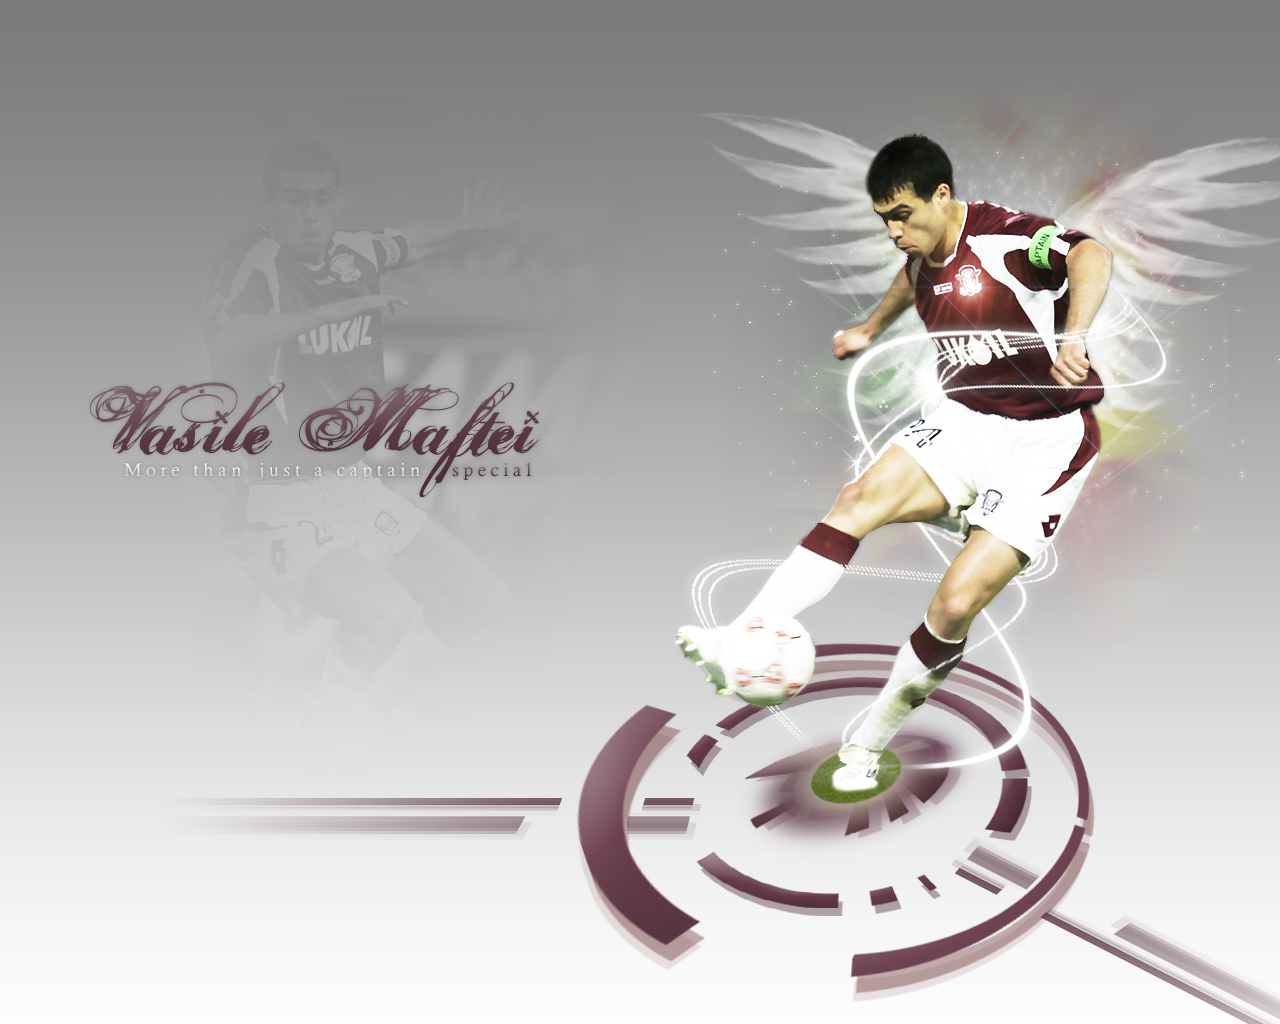 wallpapers online can be found only at wwwsoccer artcouk Total 1280x1024